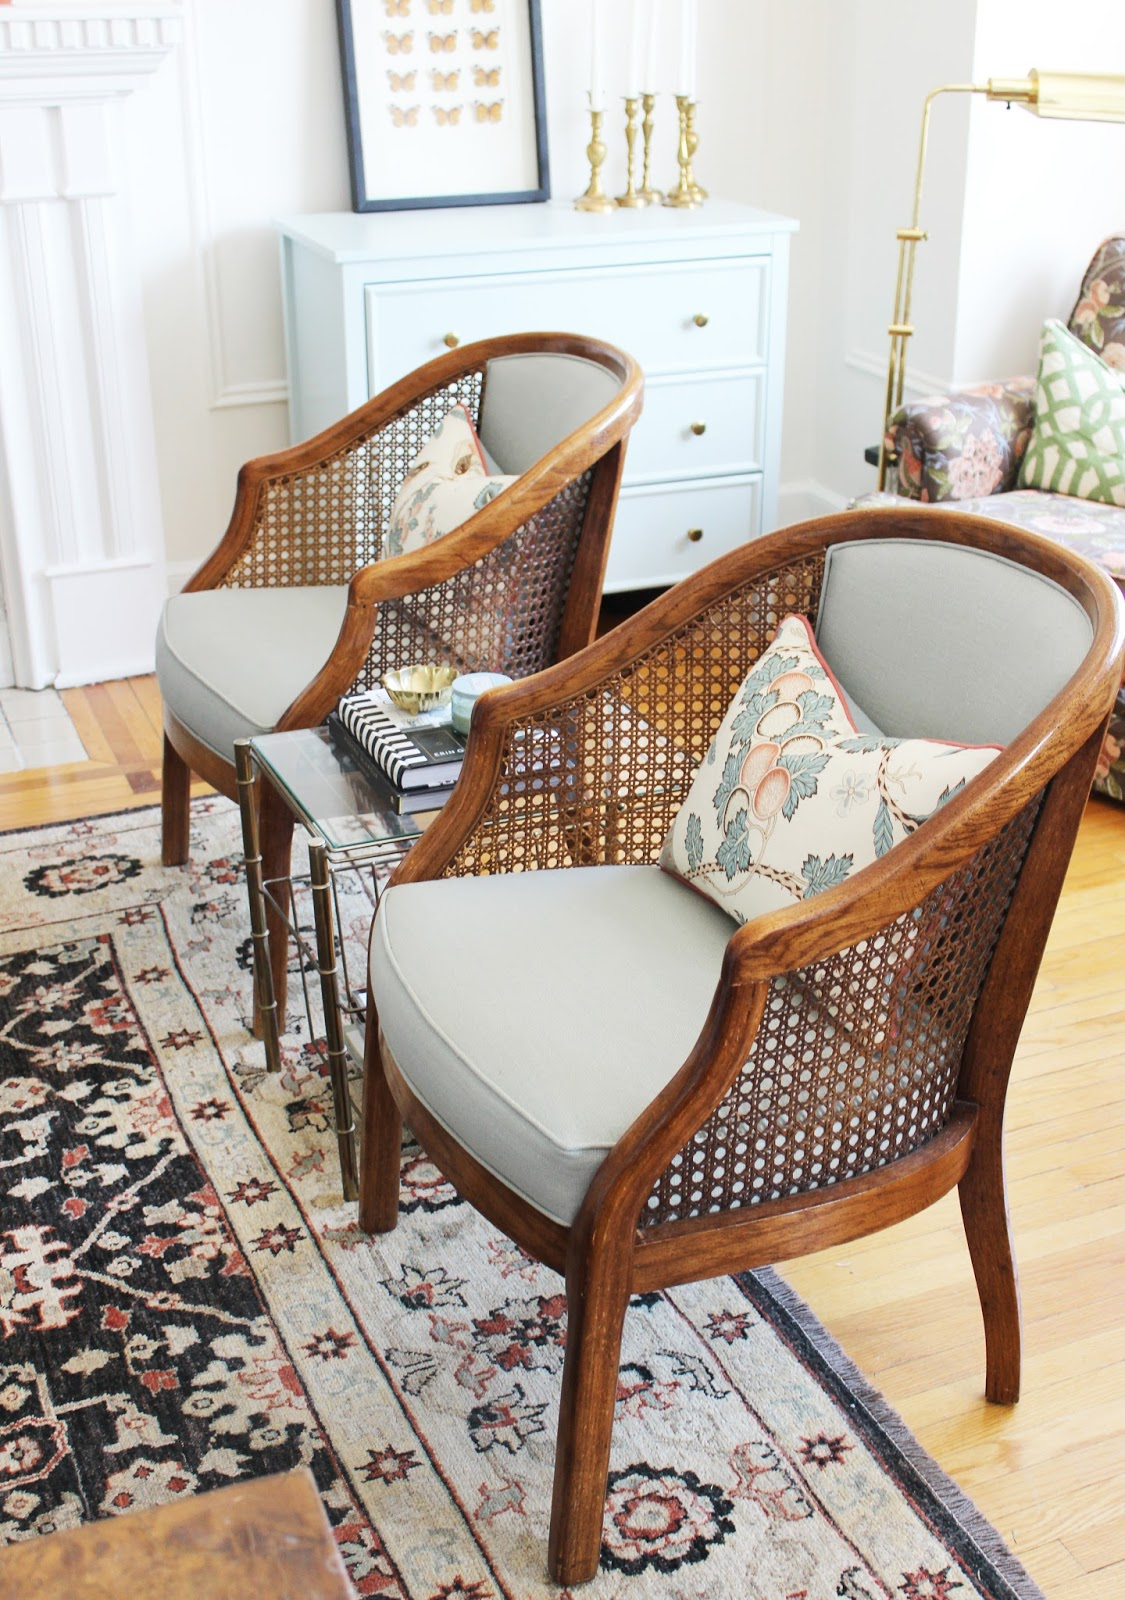 cane chairs for sale thonet chair styles tiffany leigh interior design makeover